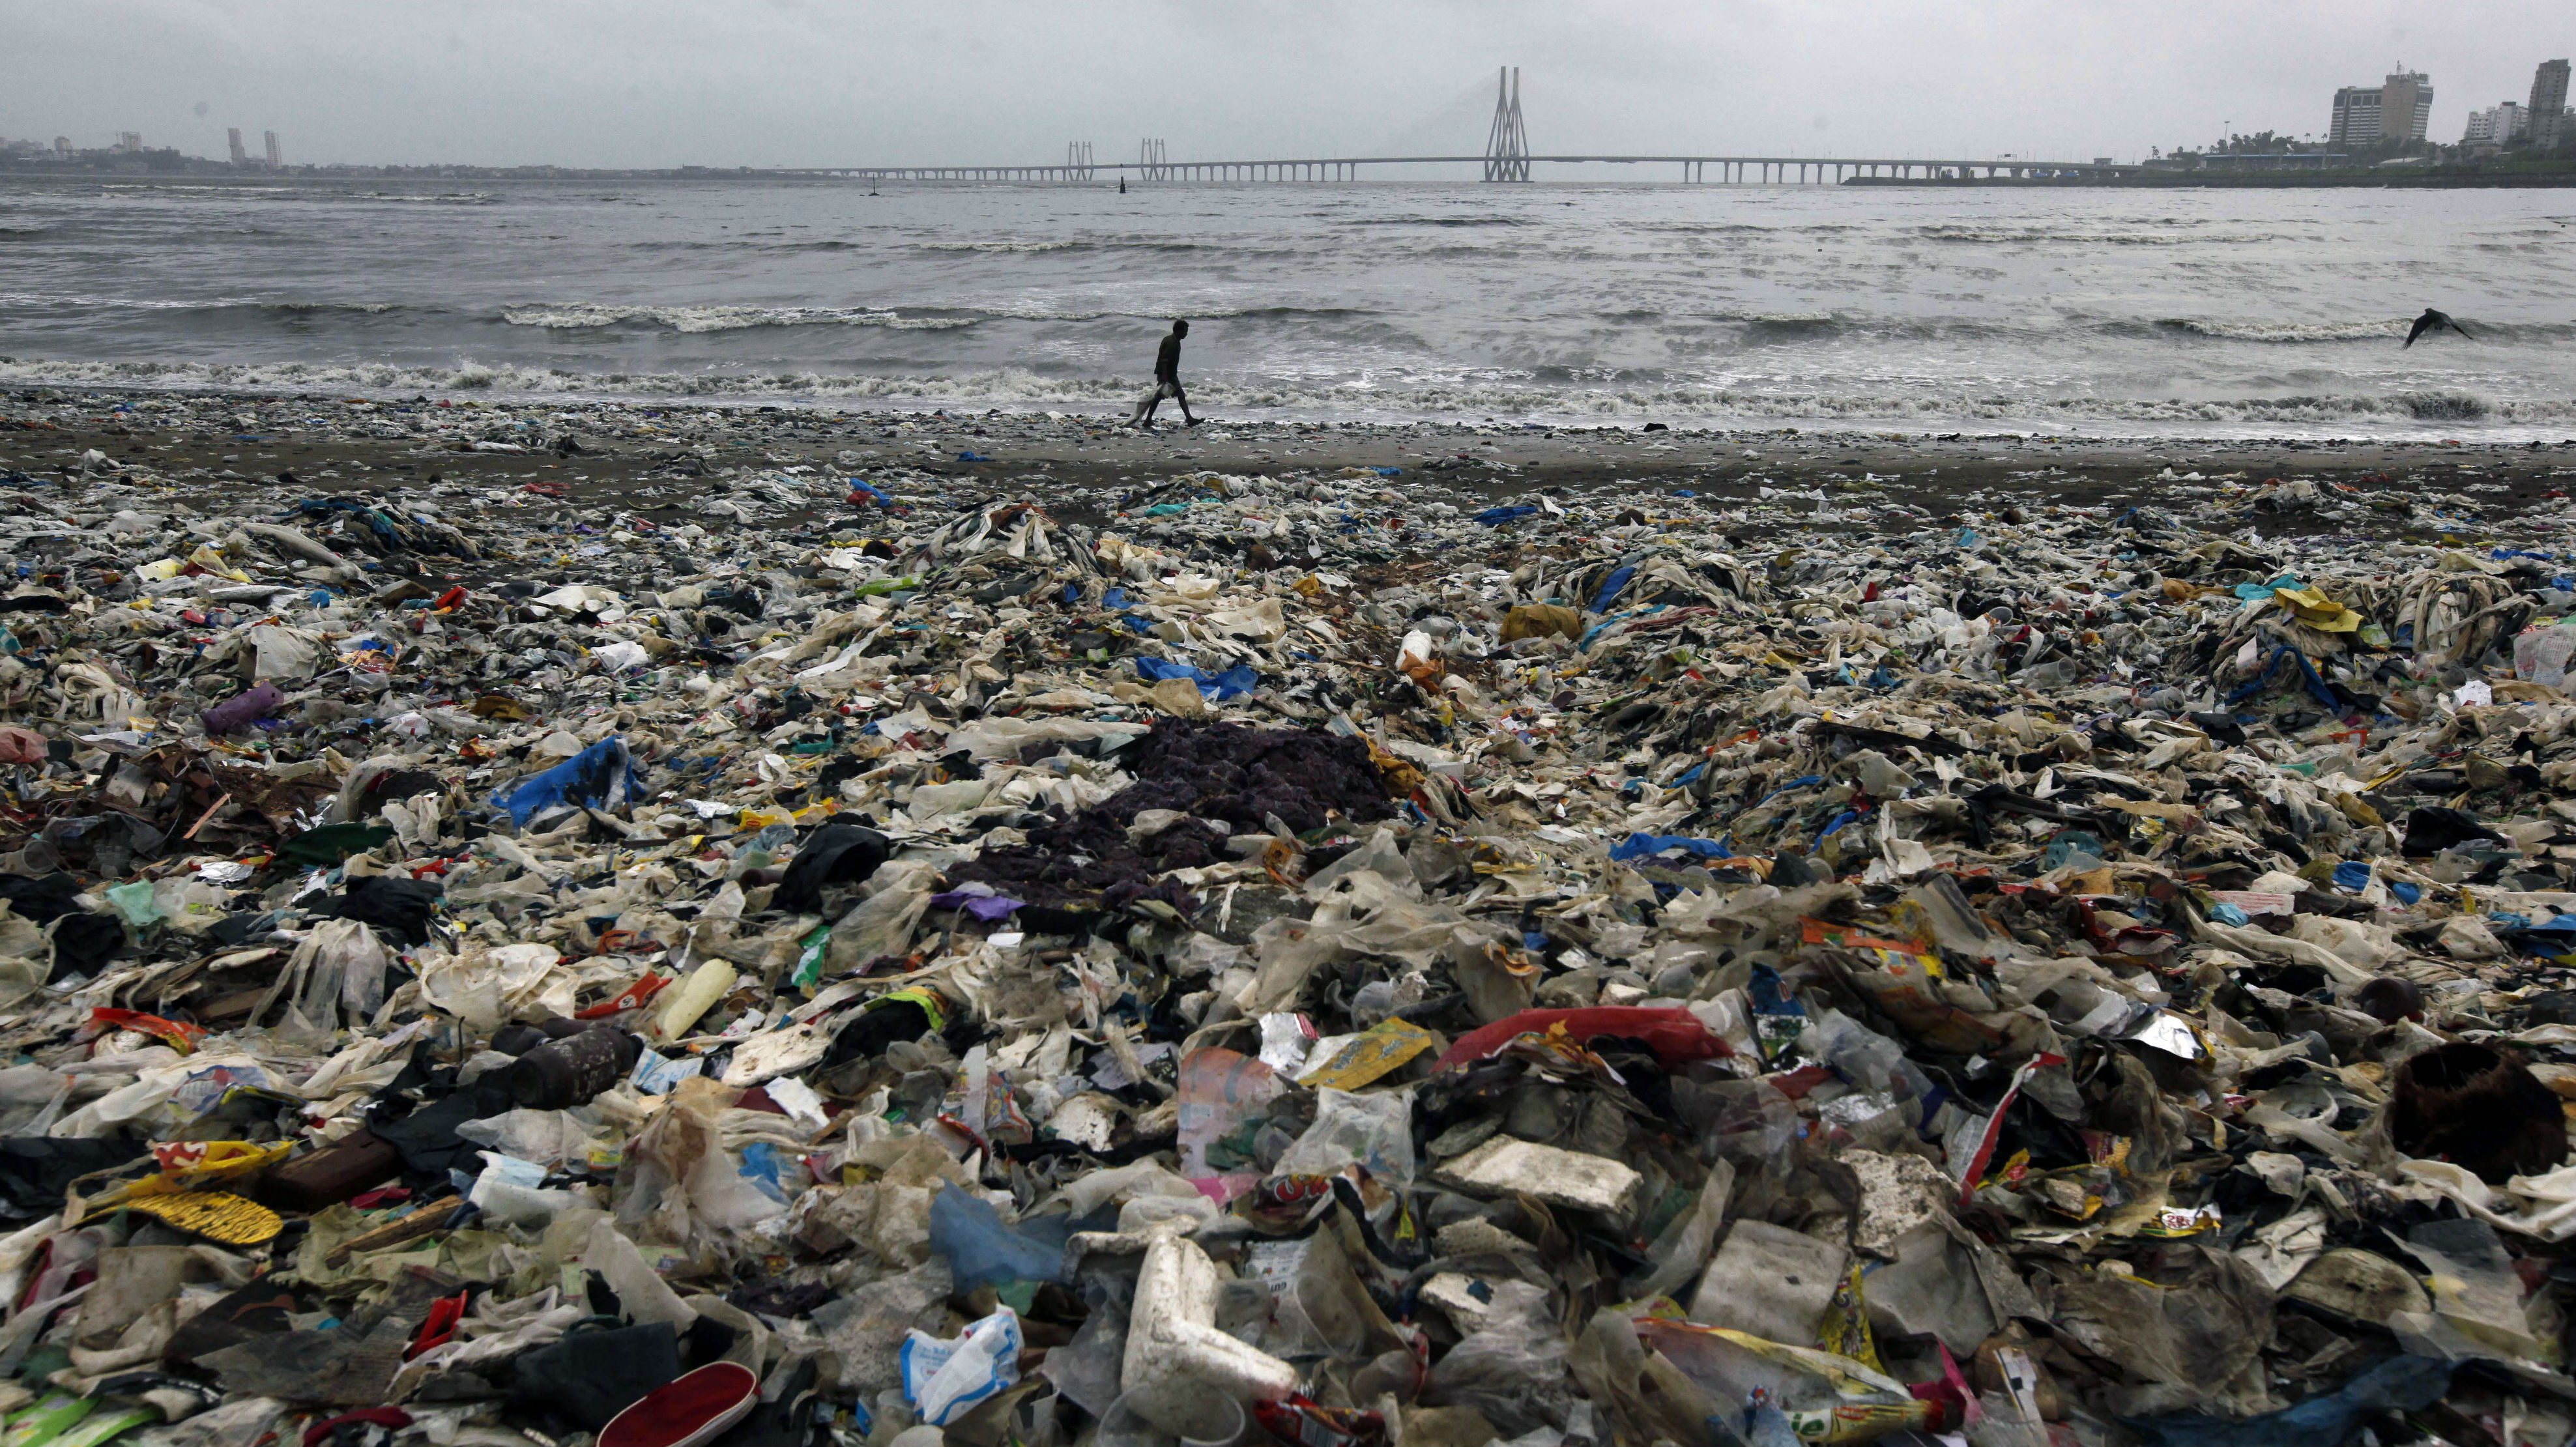 A man walks by the Arabian Sea coast piled with garbage, mostly plastic waste, in Mumbai, India, Monday, July 30, 2012.